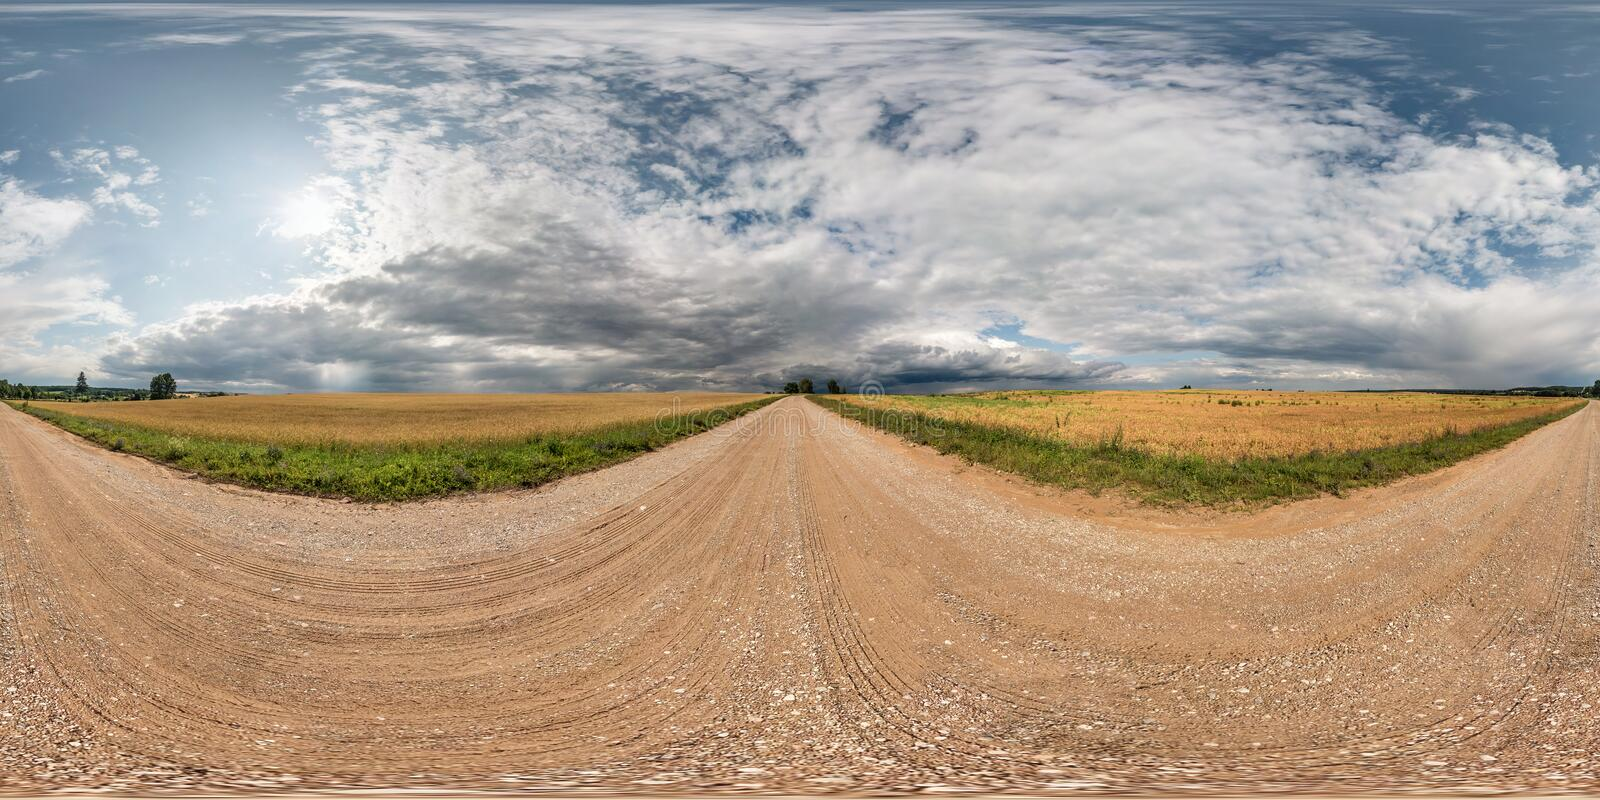 Full seamless spherical hdri panorama 360 degrees angle view on gravel road among fields with awesome clouds before storm in. Equirectangular projection, ready stock image